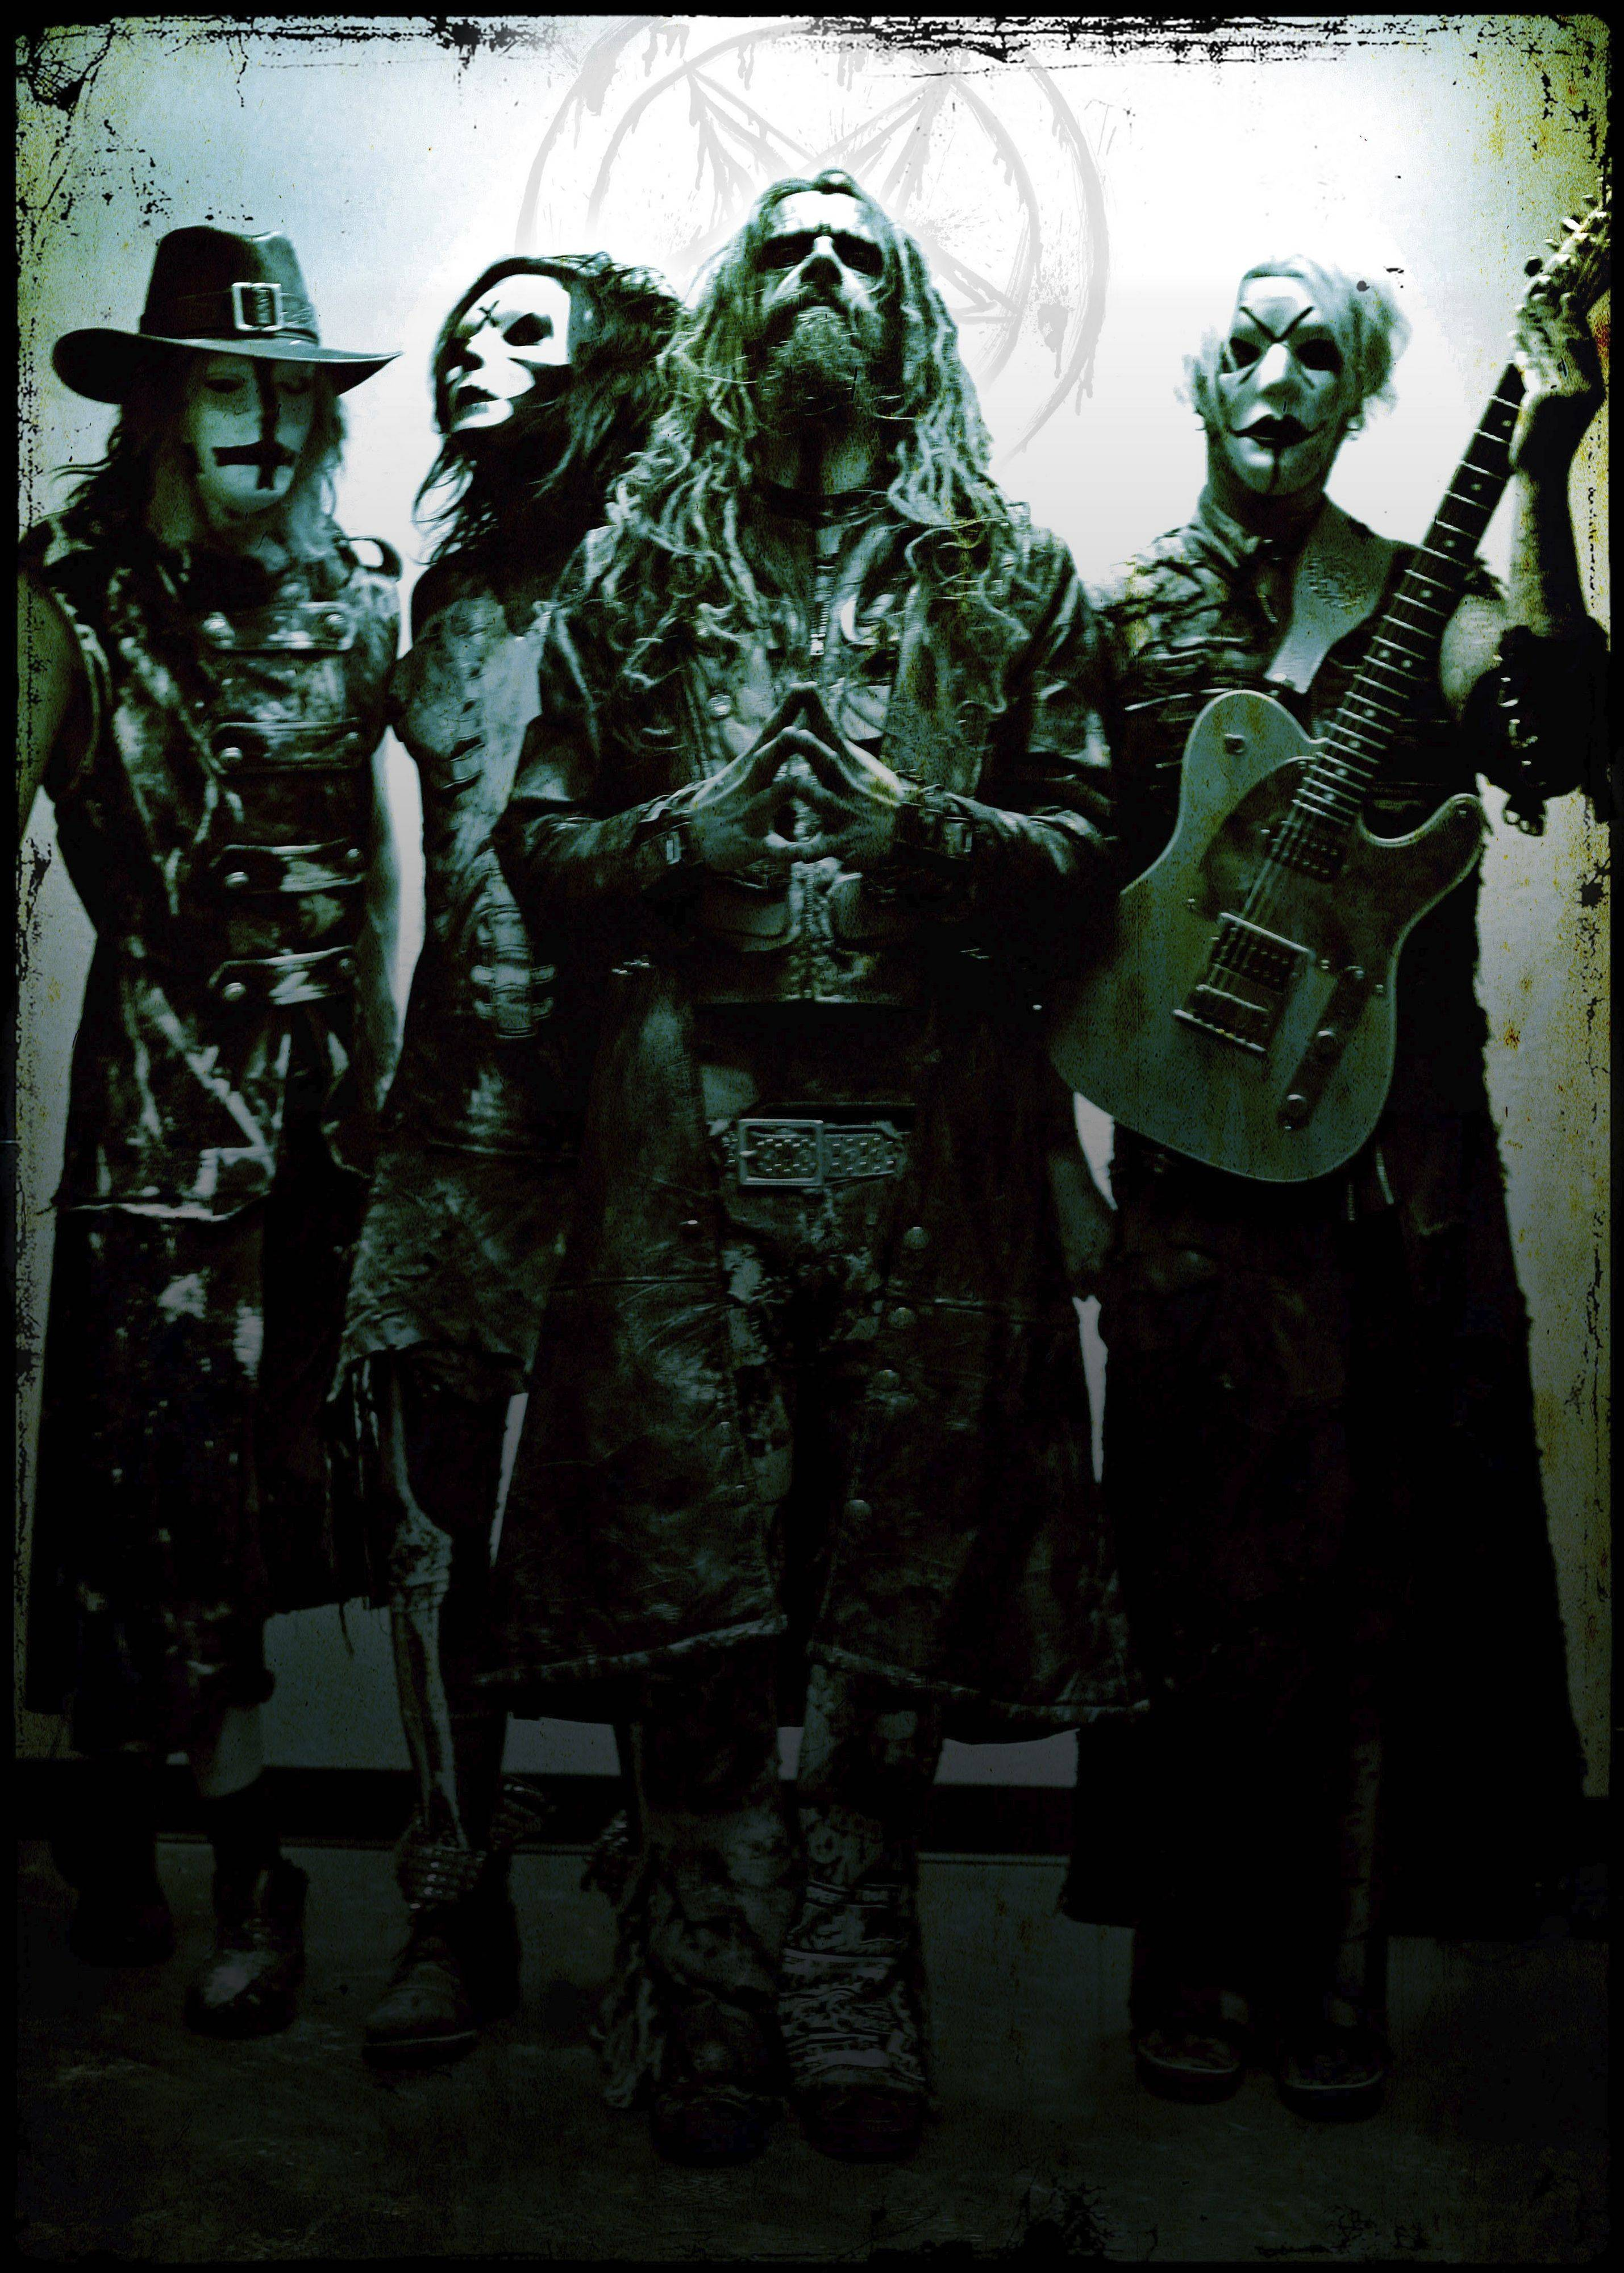 Rob Zombie will be a co-headliner alongside Marilyn Manson on Thursday, Oct. 11, when the Twins of Evil Tour stops at the Allstate Arena in Rosemont. Pictured left to right are band members Ginger Fish, Piggy D, Zombie and John5.